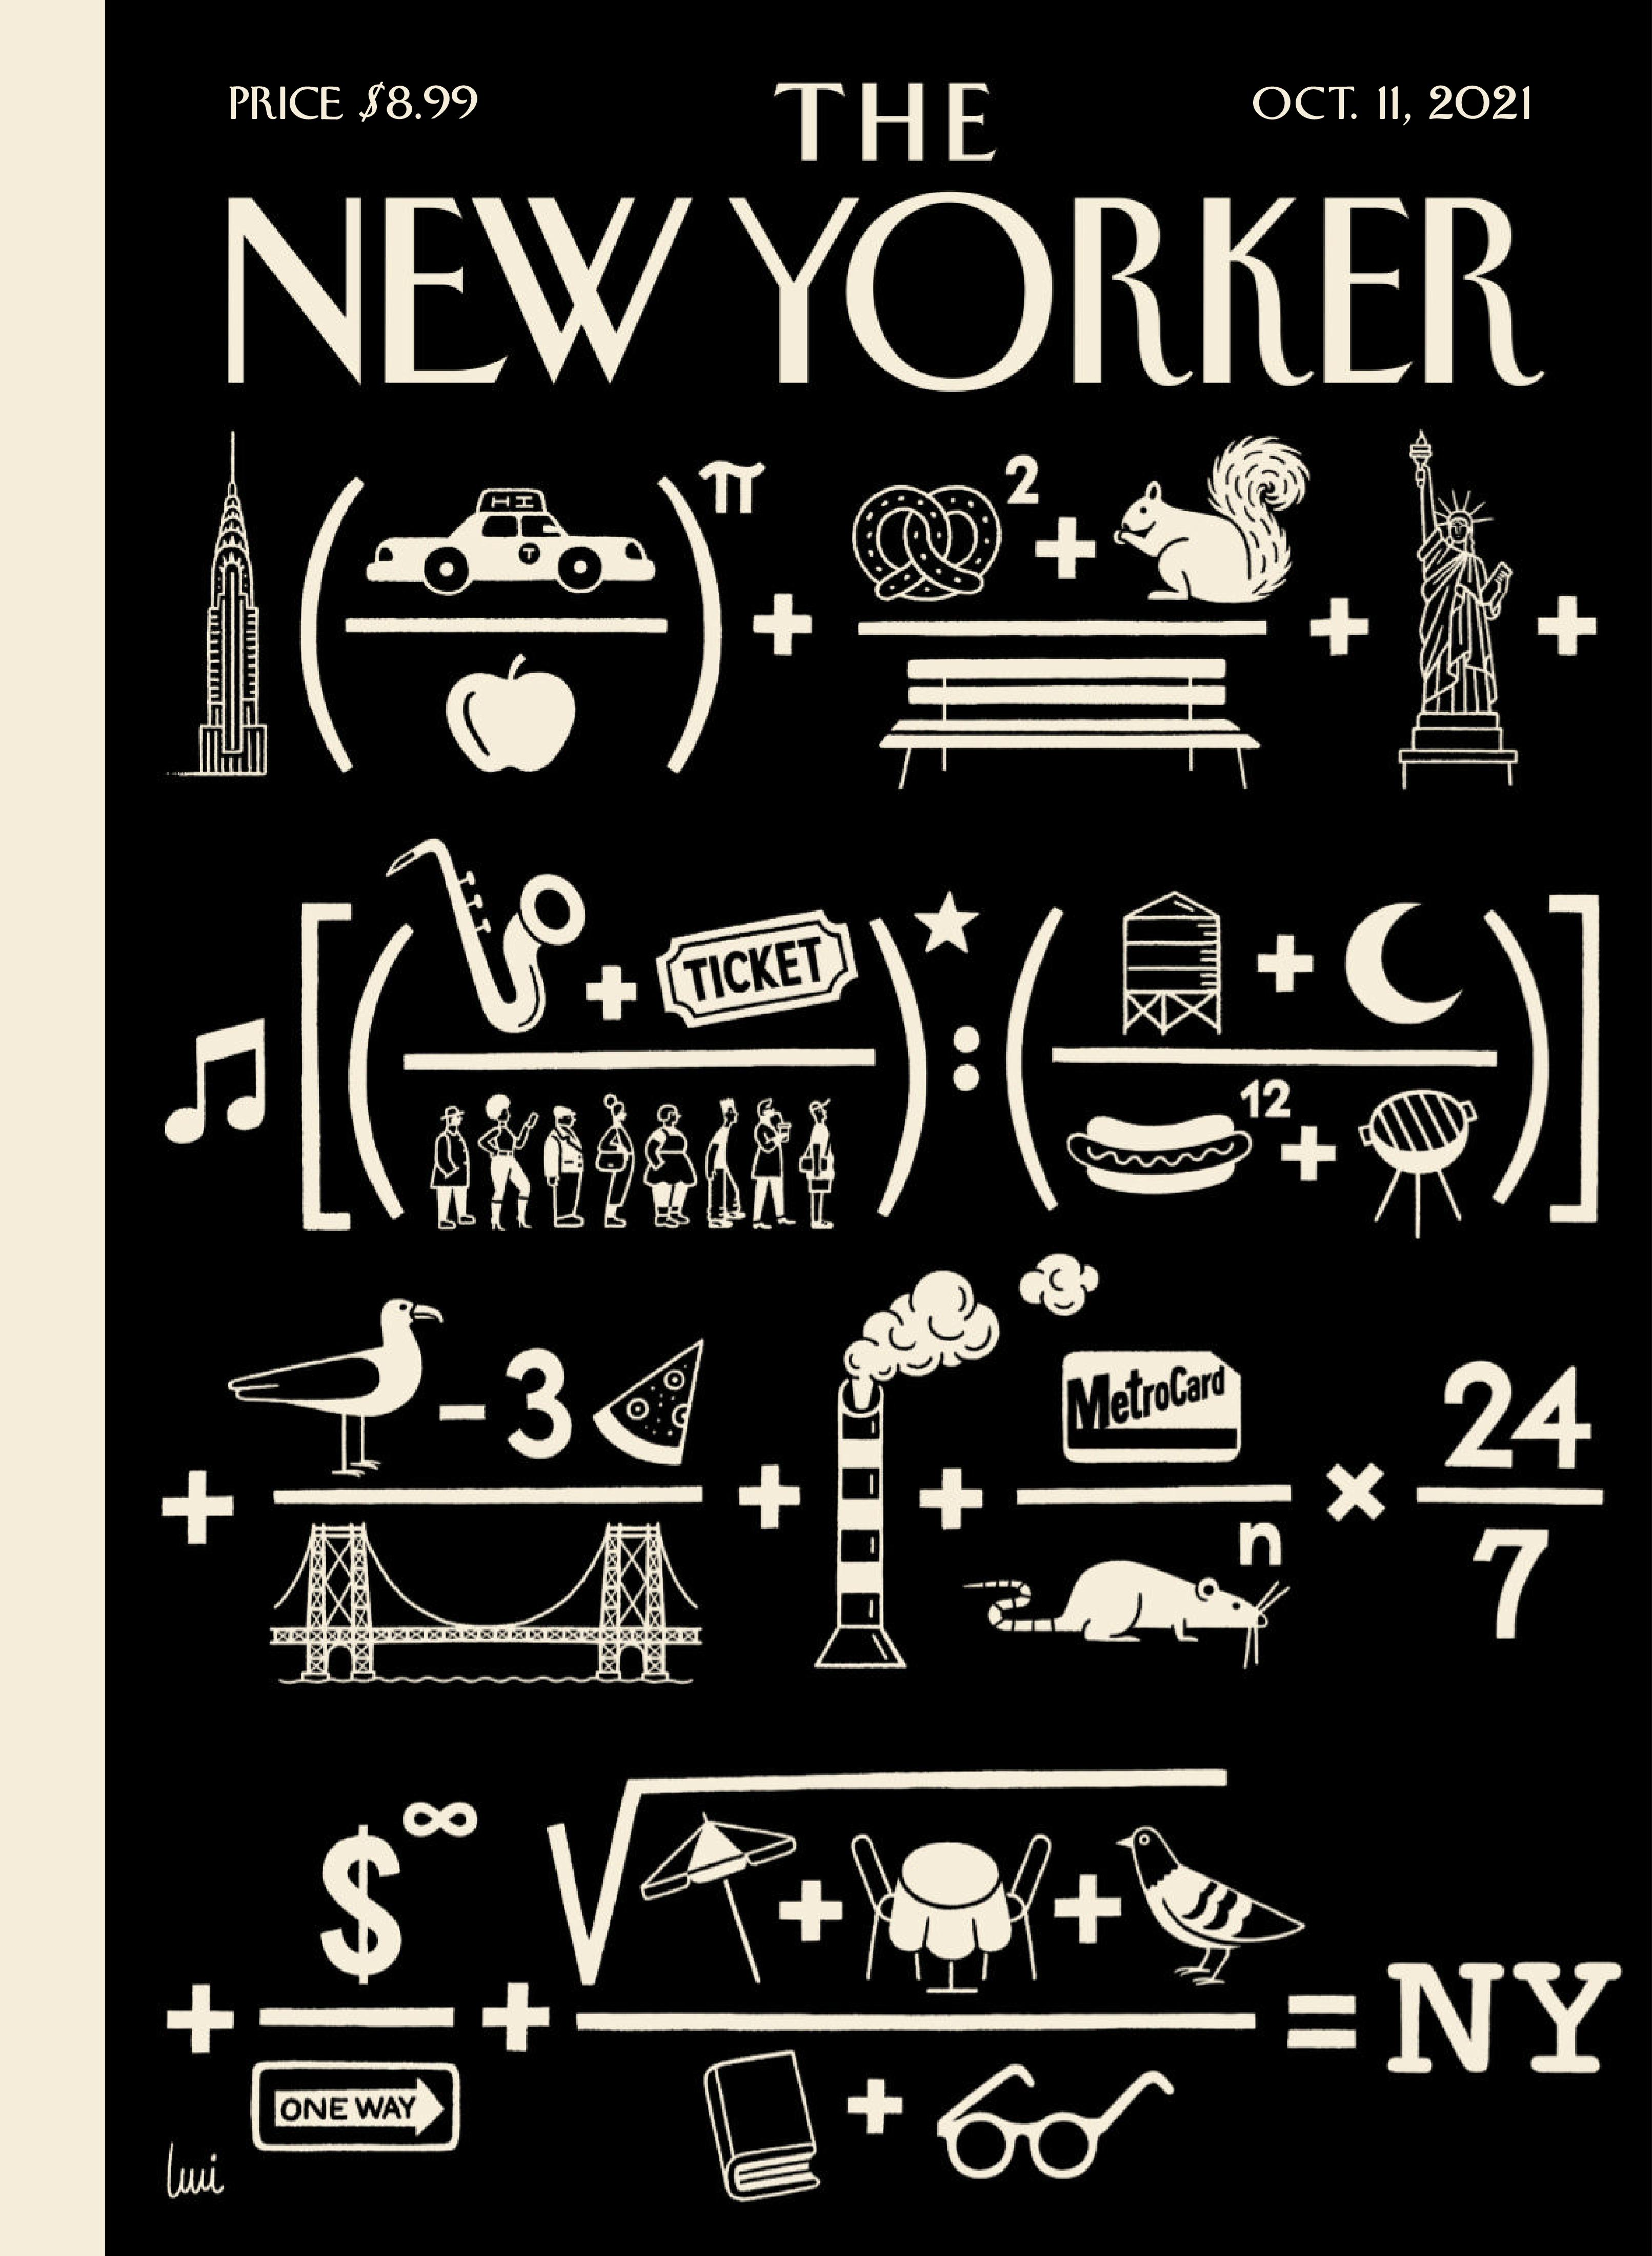 The New Yorker – October 11, 2021